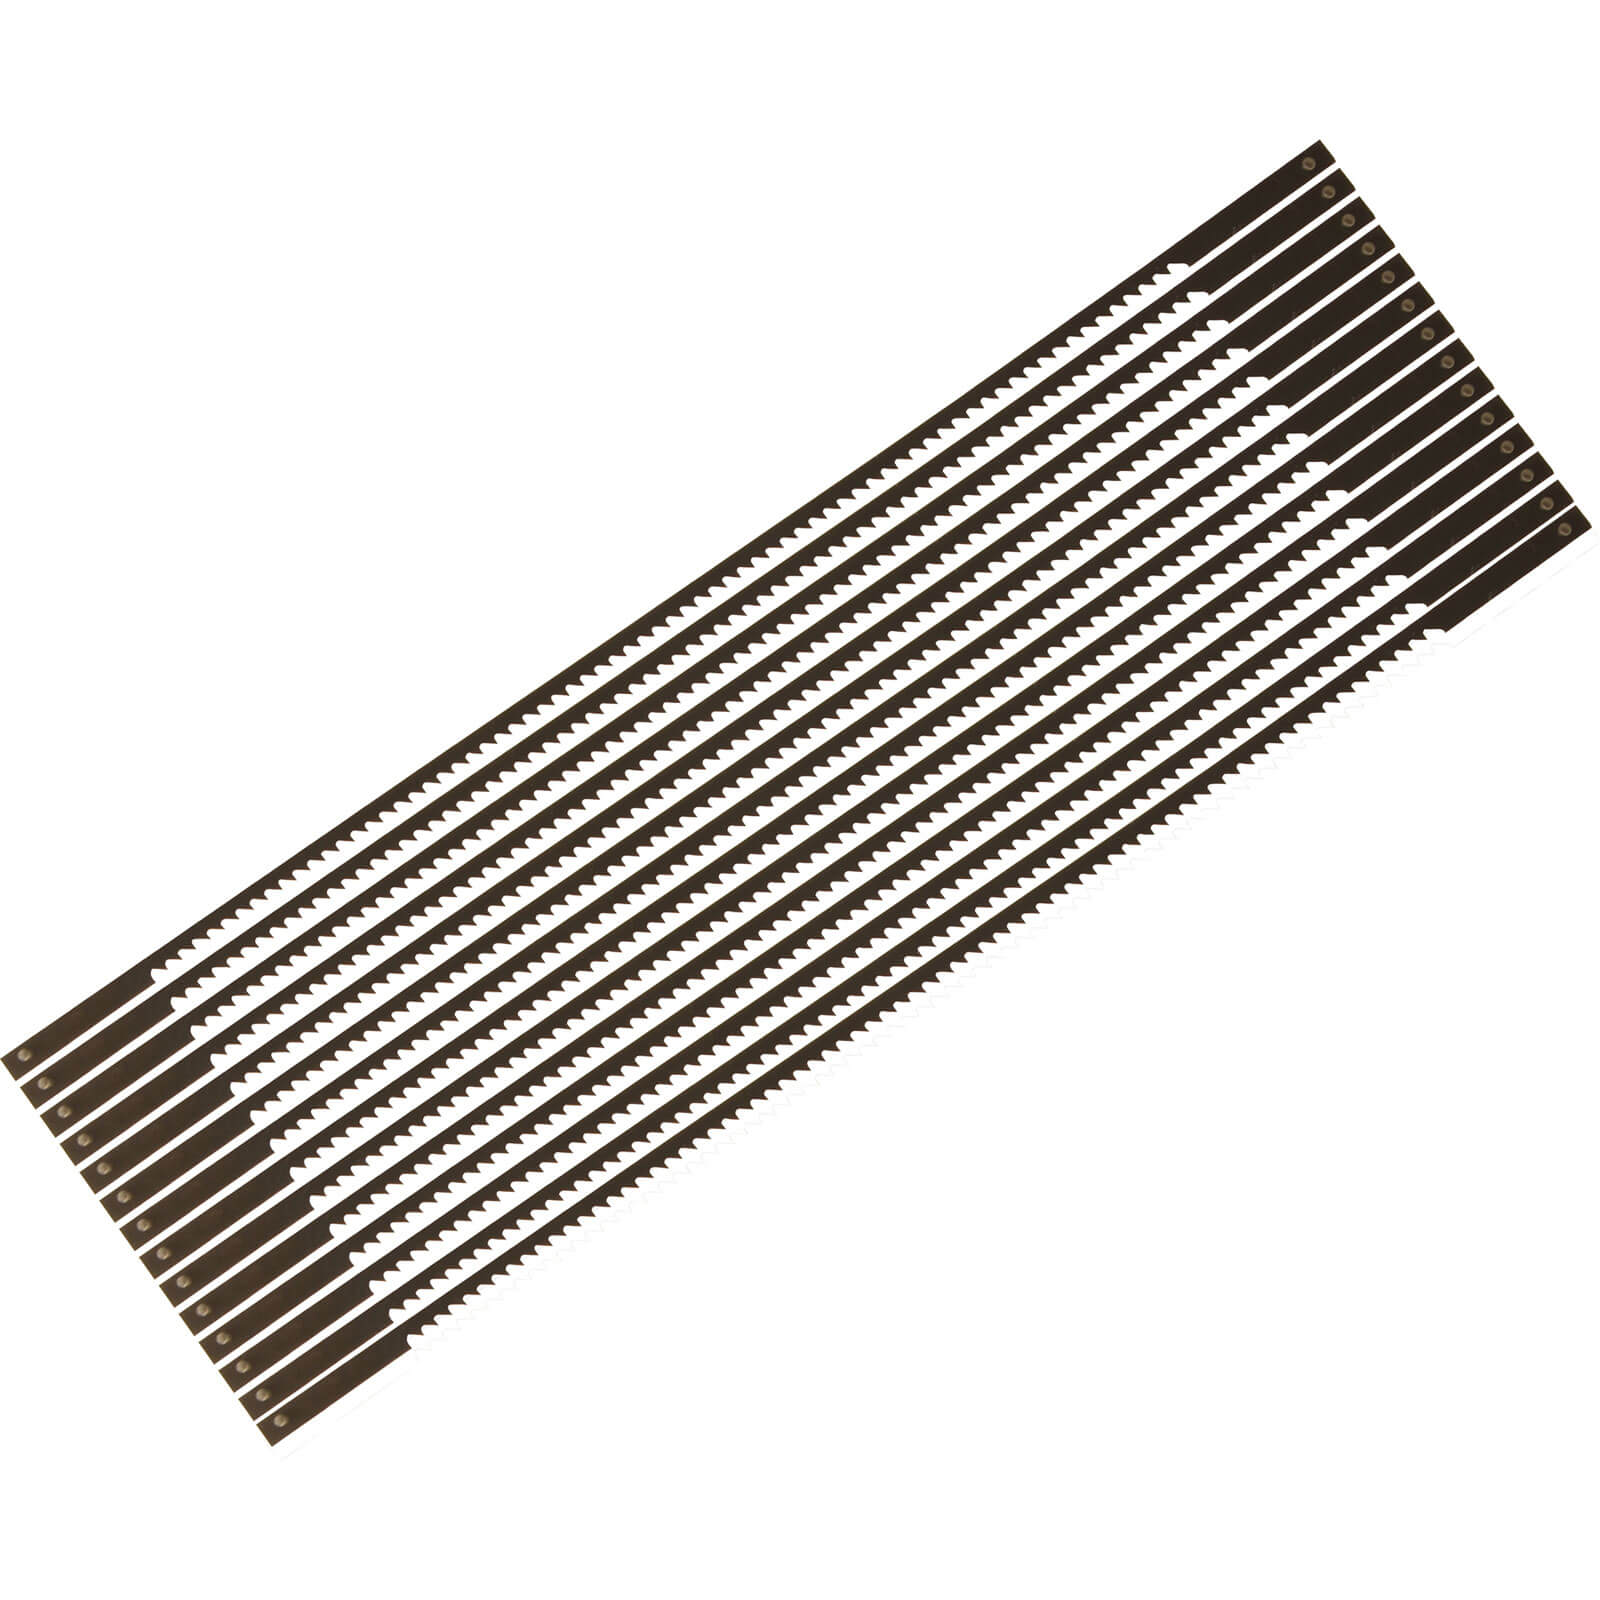 Image of Faithfull Coping Saw Blades Pack of 100